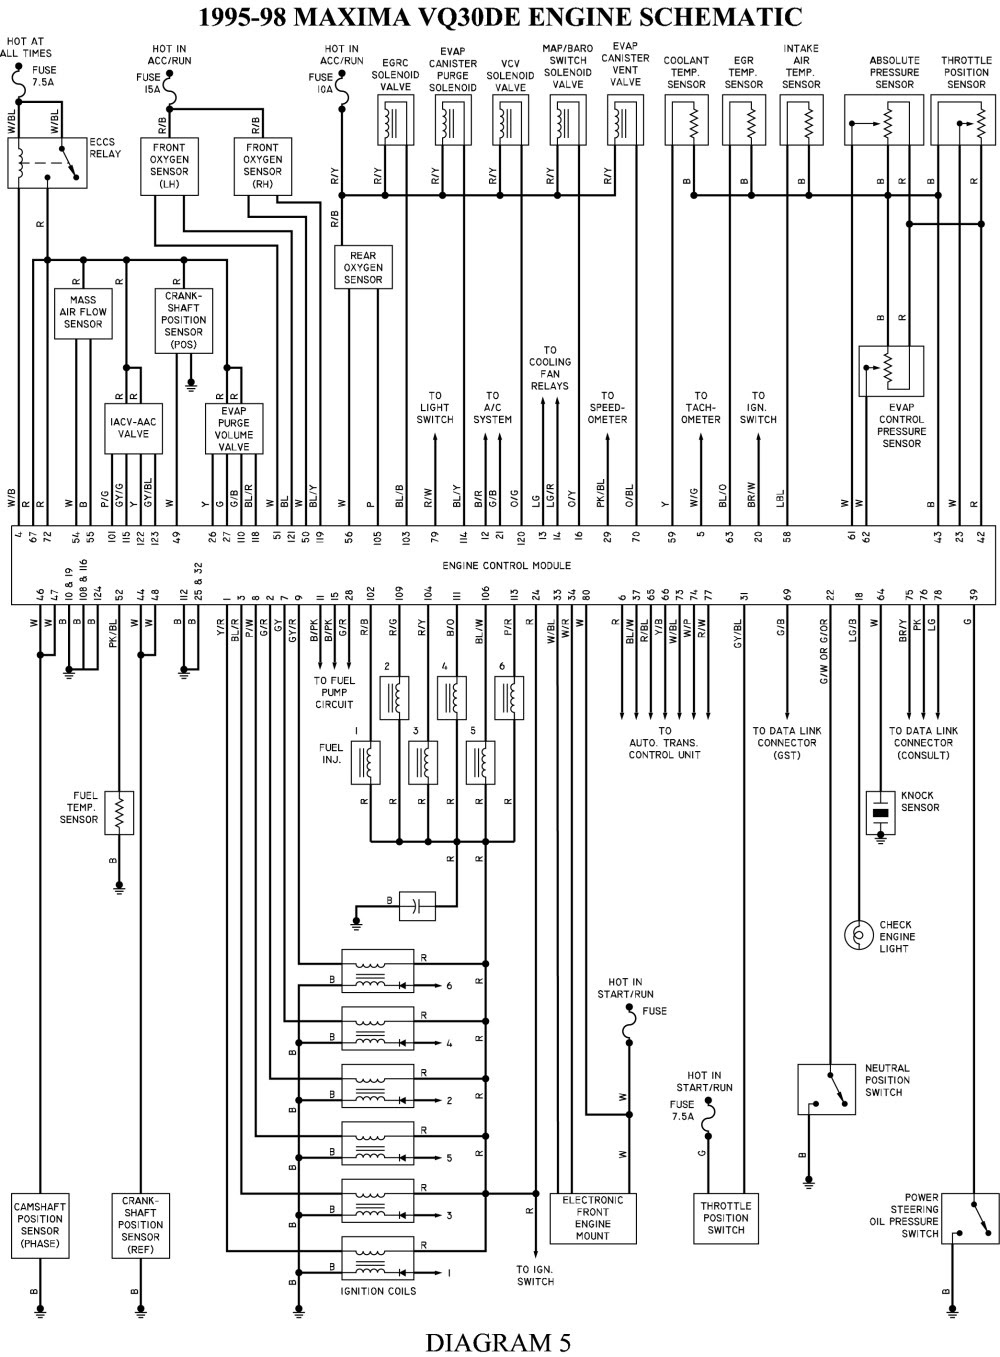 1995 Nissan Sentra Engine Diagram Wiring Diagram Drain Completed A Drain Completed A Graniantichiumbri It